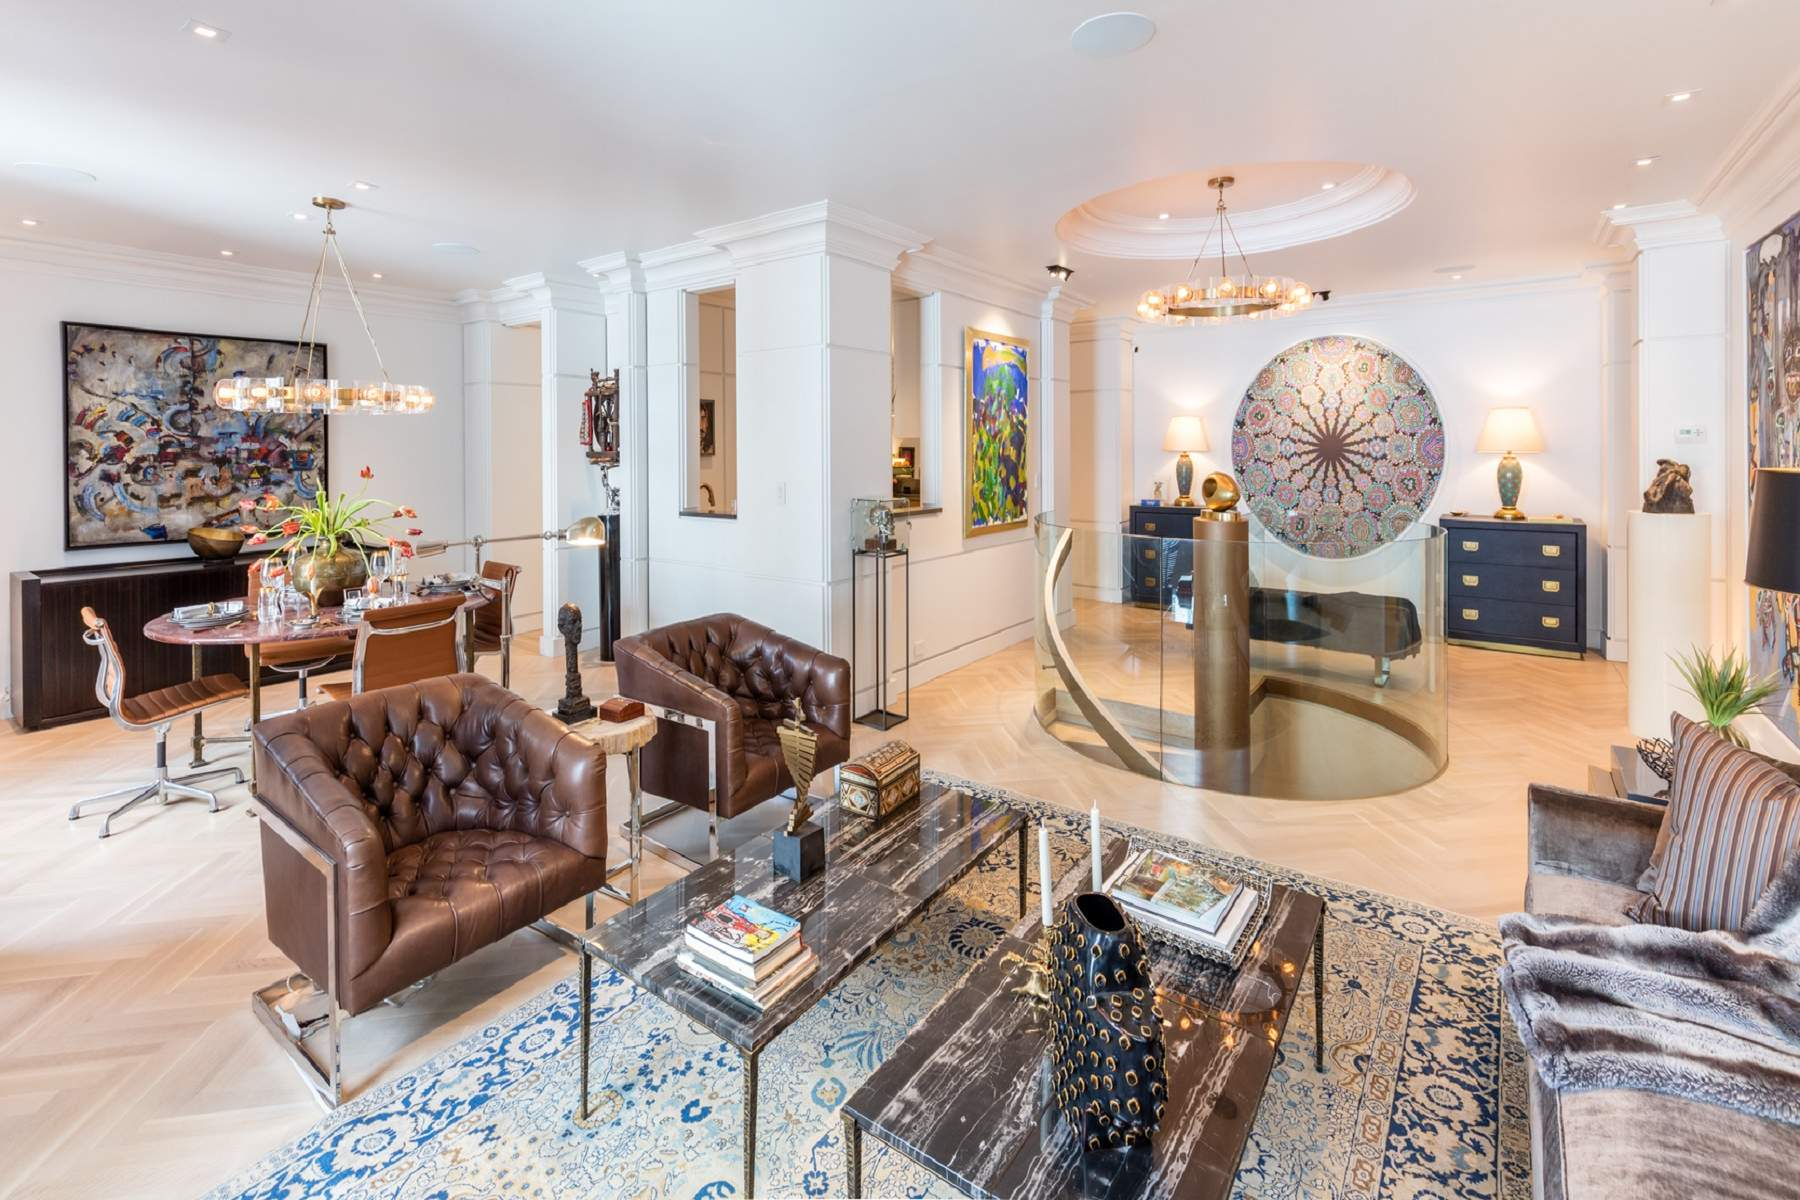 Co-op for Sale at The Ritz Tower 465 Park Avenue, Apt 14A Upper East Side, New York, New York, 10022 United States